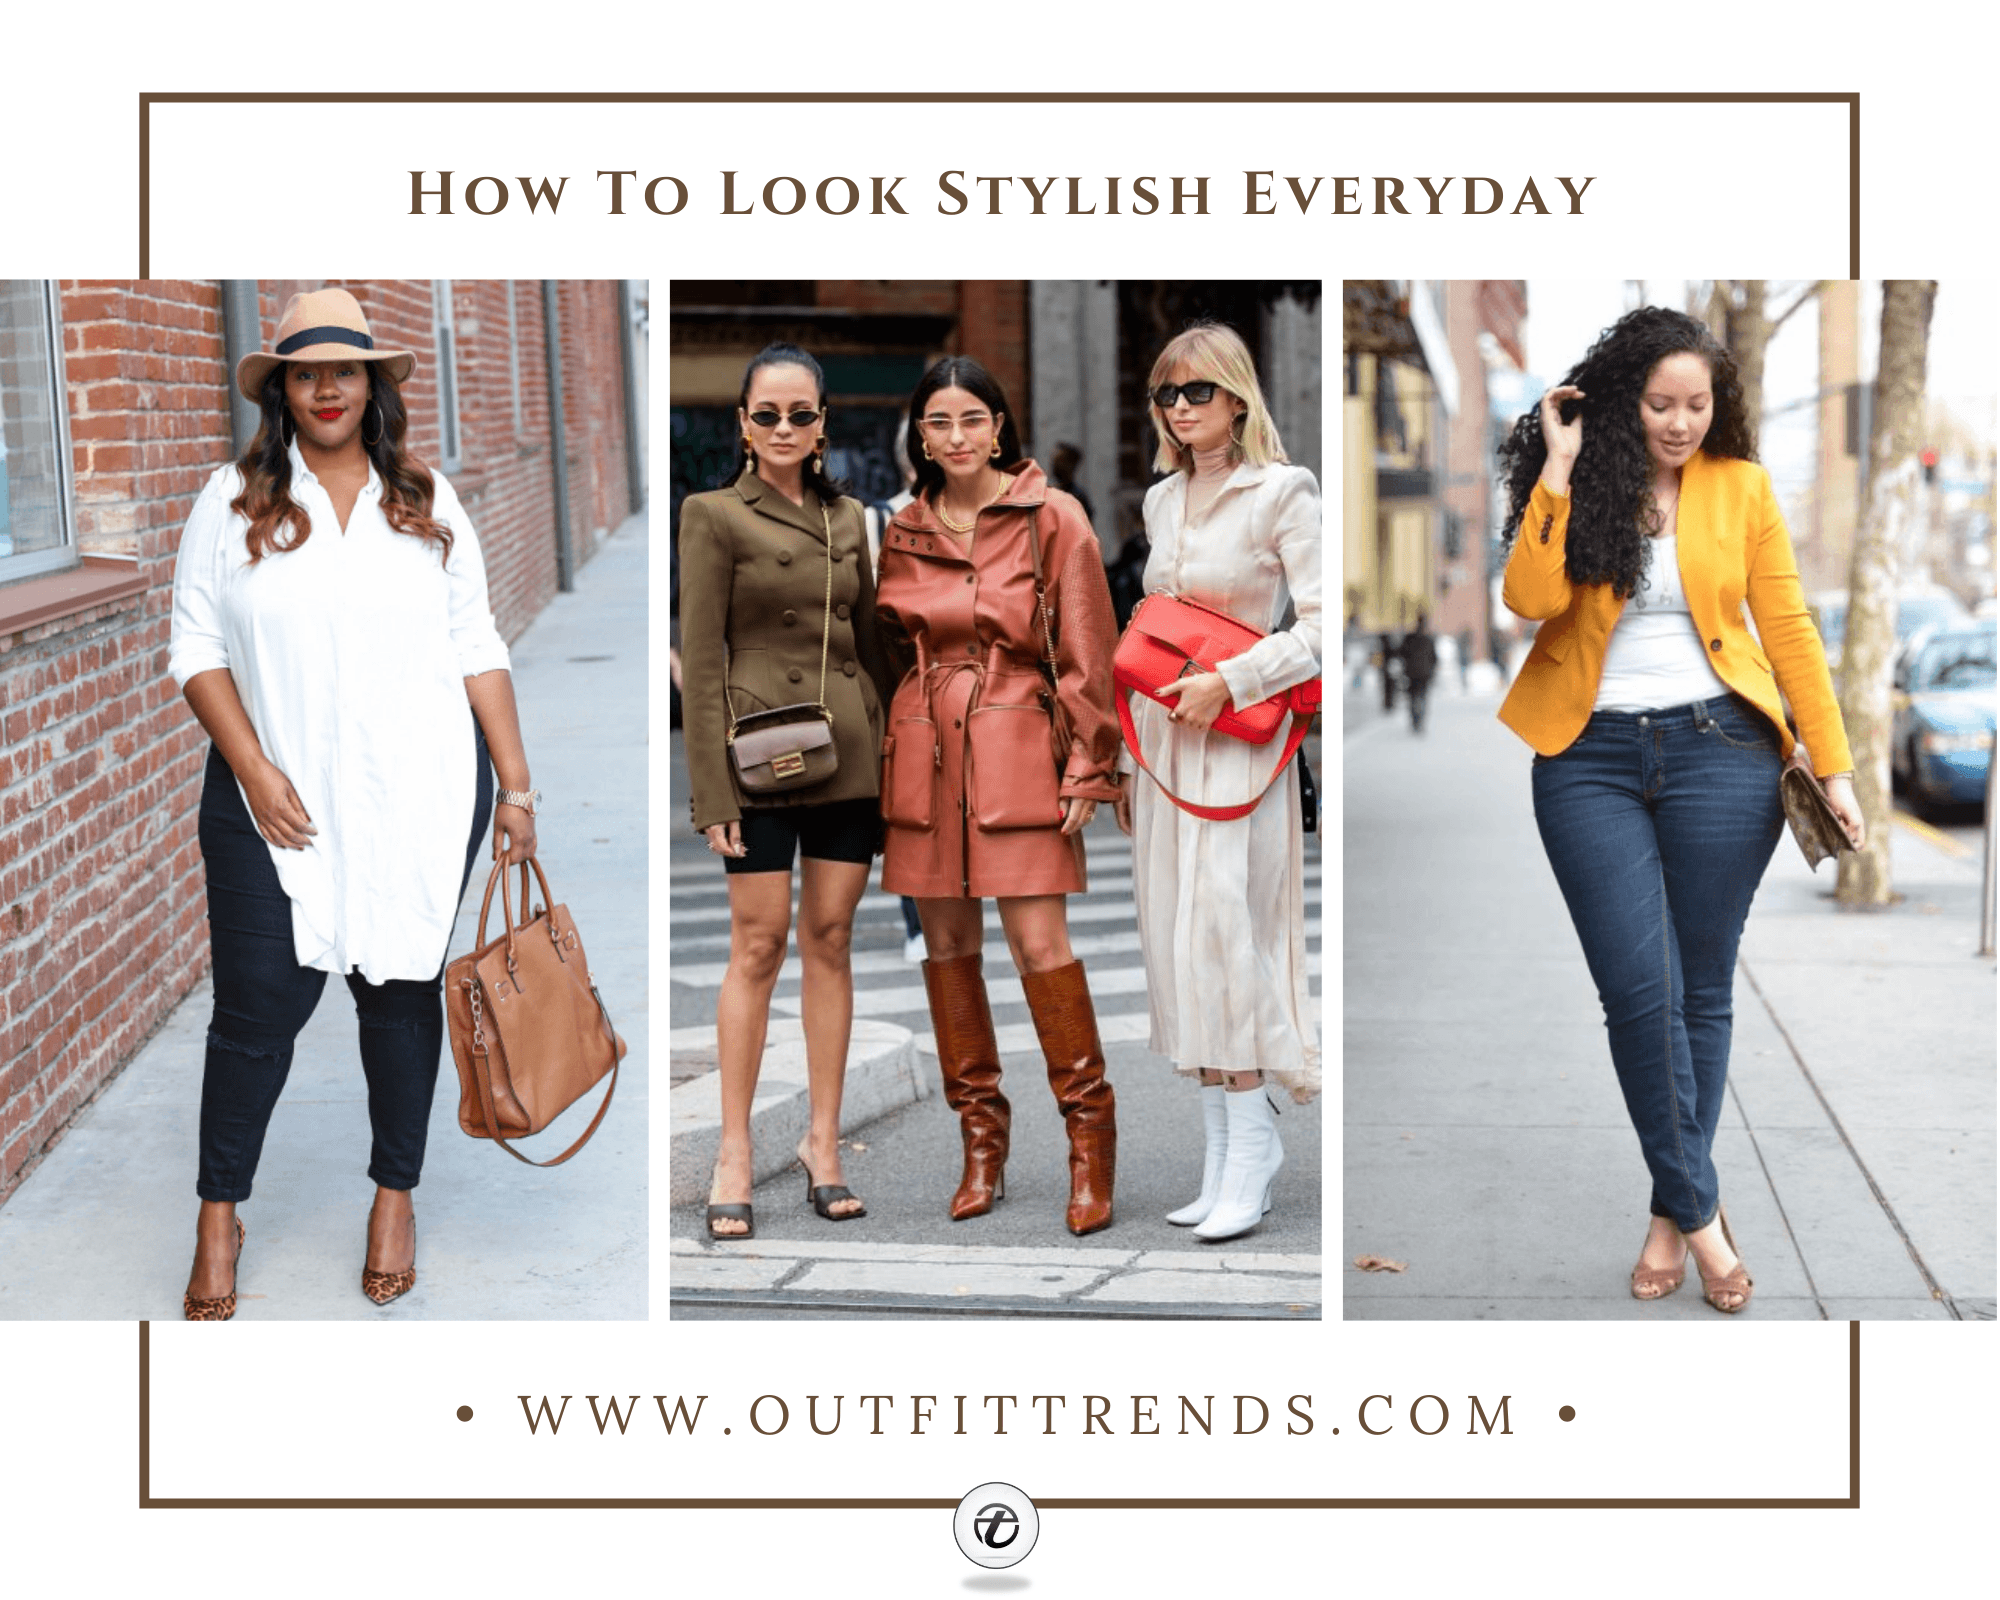 How to Look Stylish   15 Simple Tips for Girls to Look Fashionable